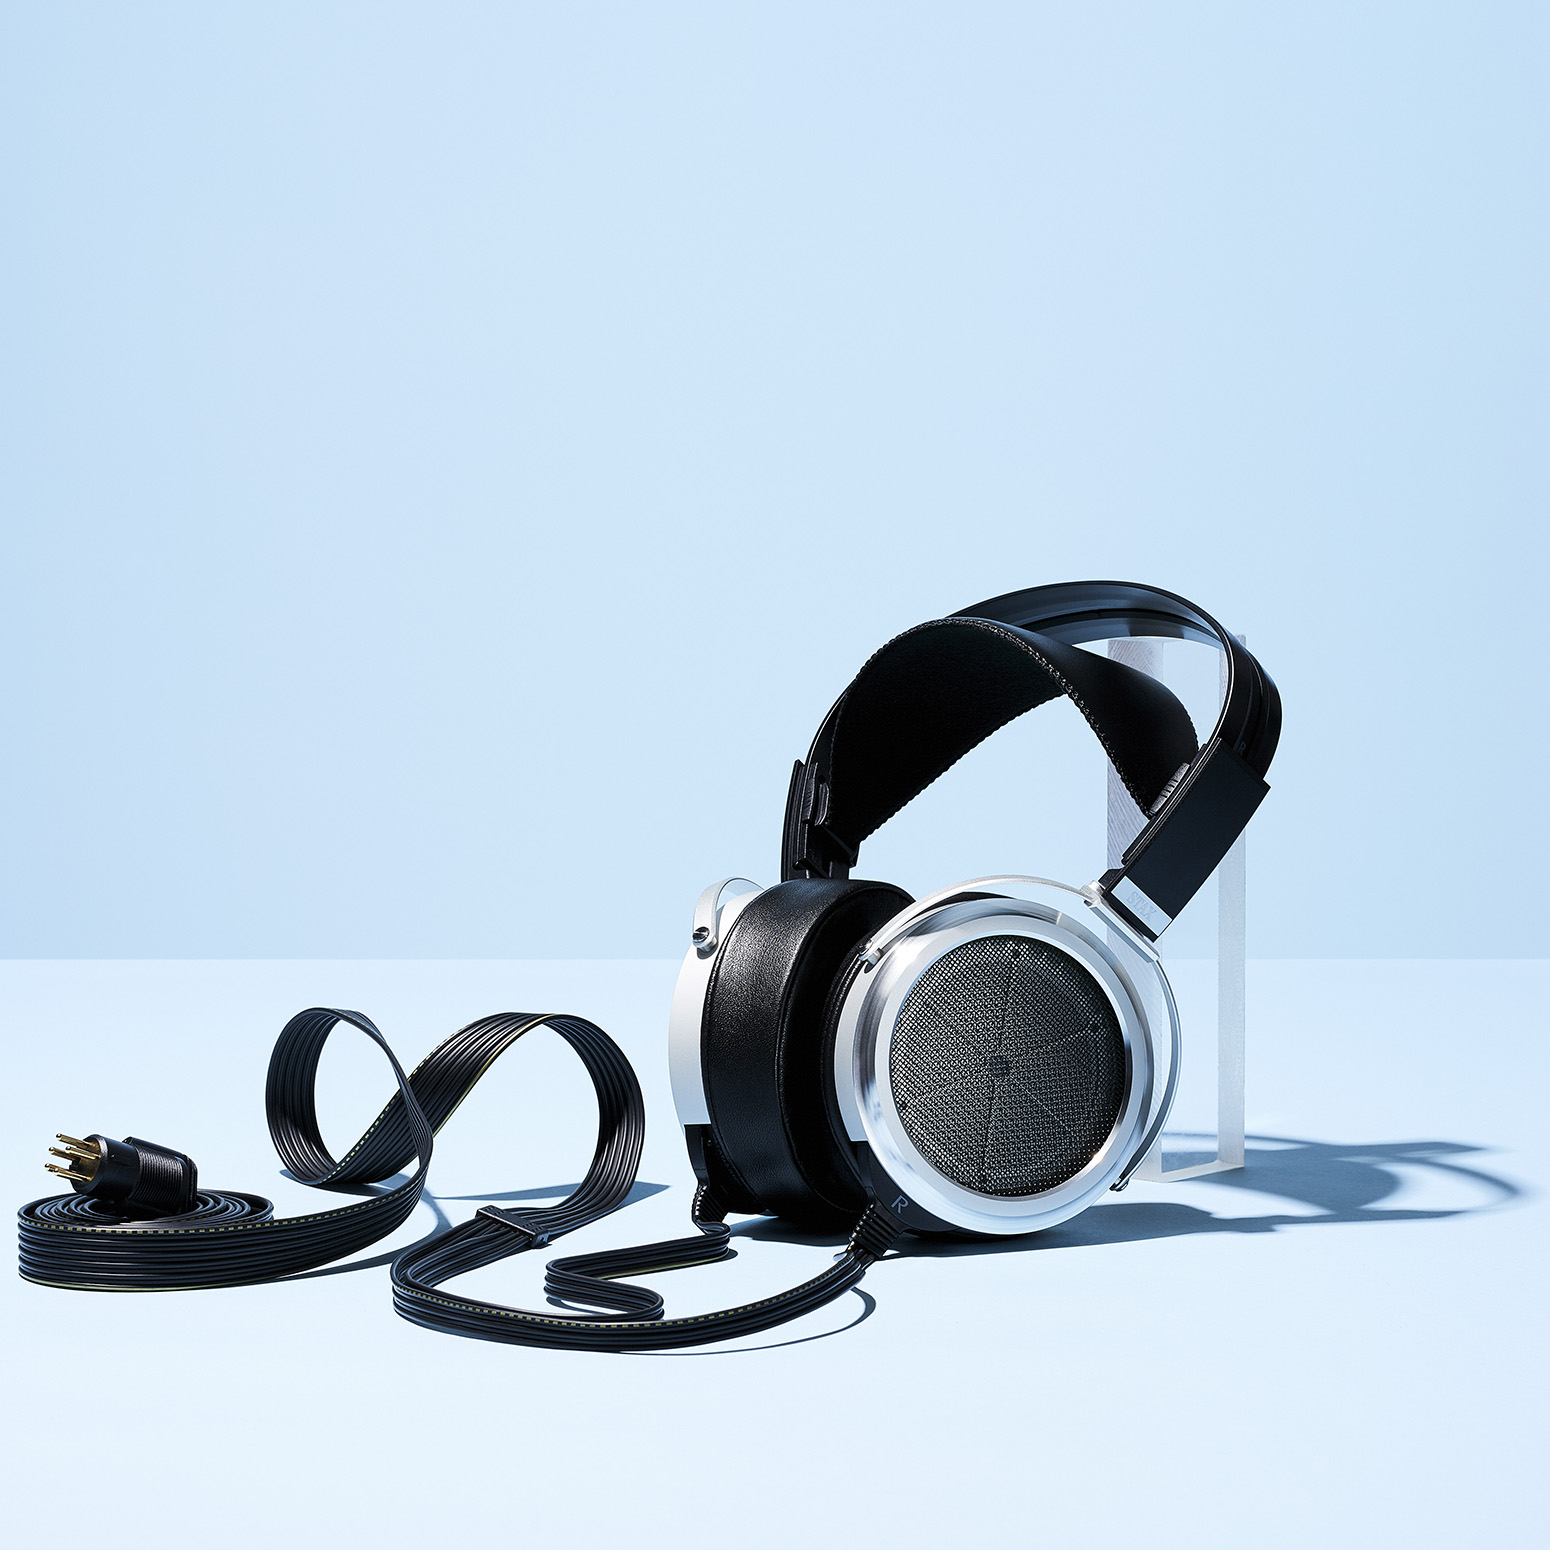 Stax Headphones styled by Jessica Stewart Prop Stylist Specializing in technology Imagery and Styling